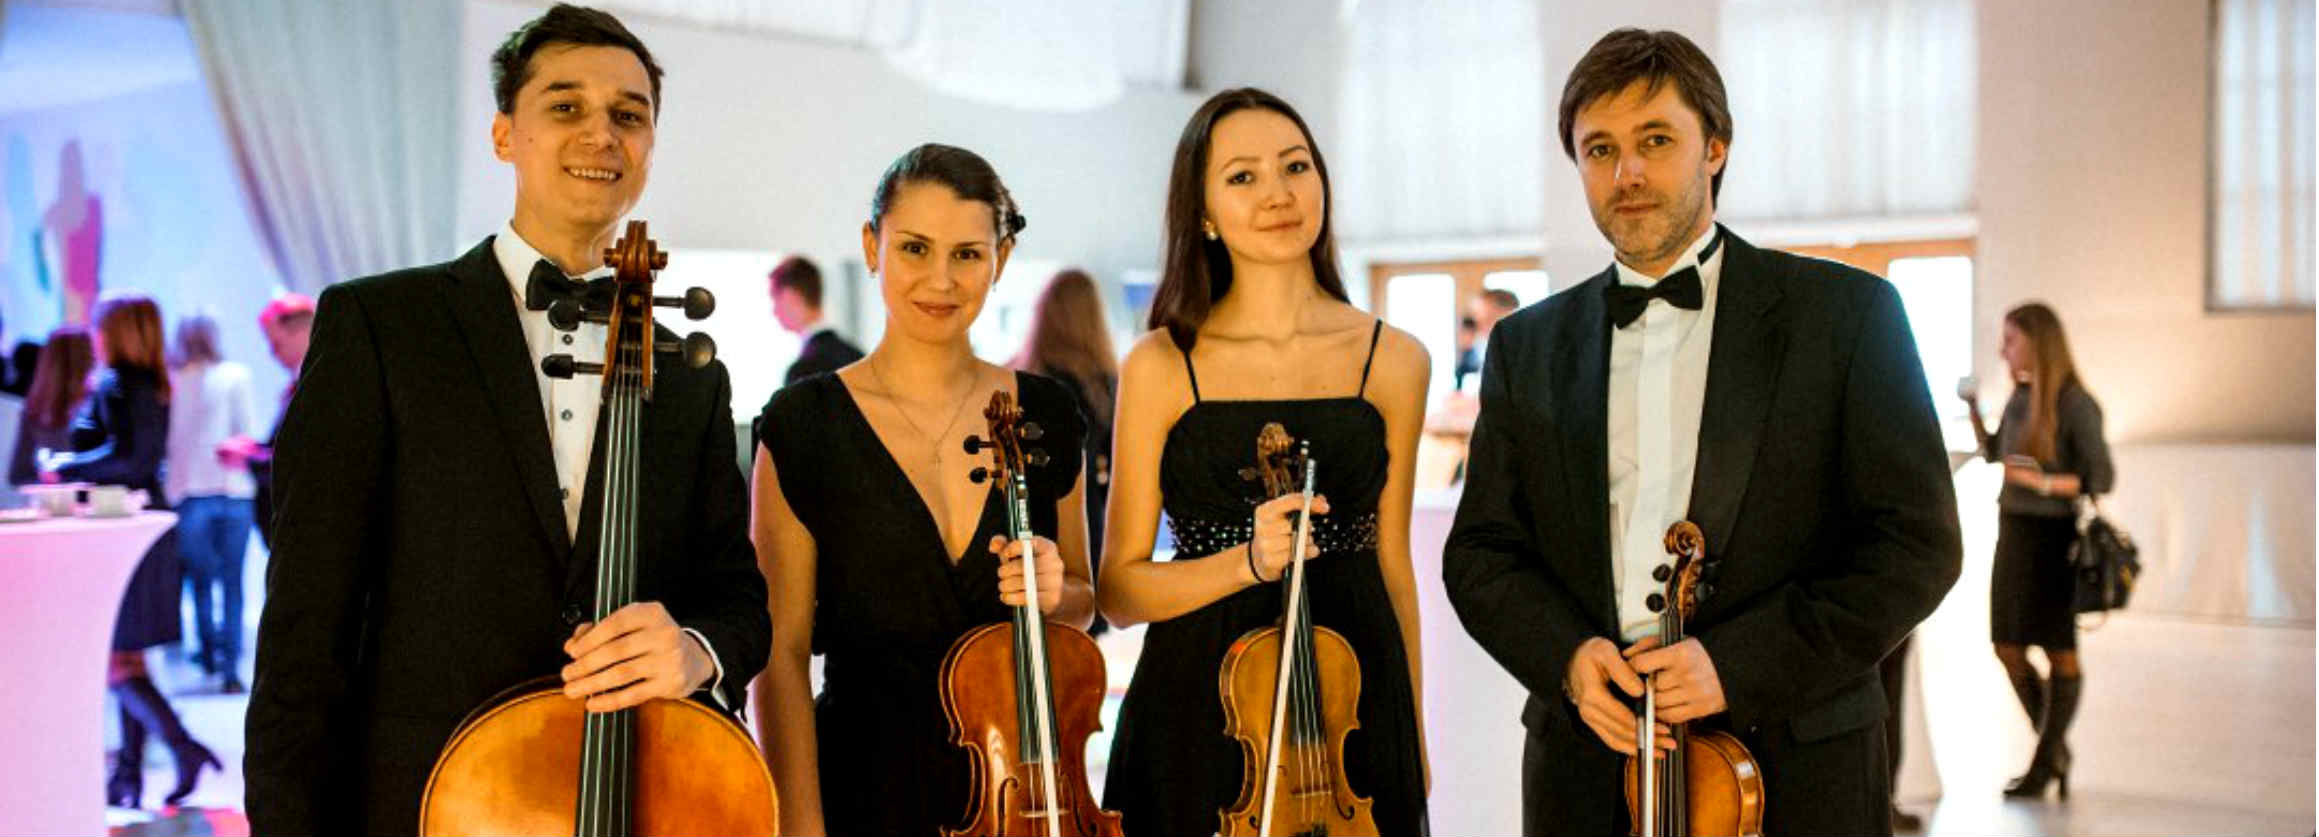 Providence String Quartet: ceremony music,string quartet for corporate events, string quo, string trio